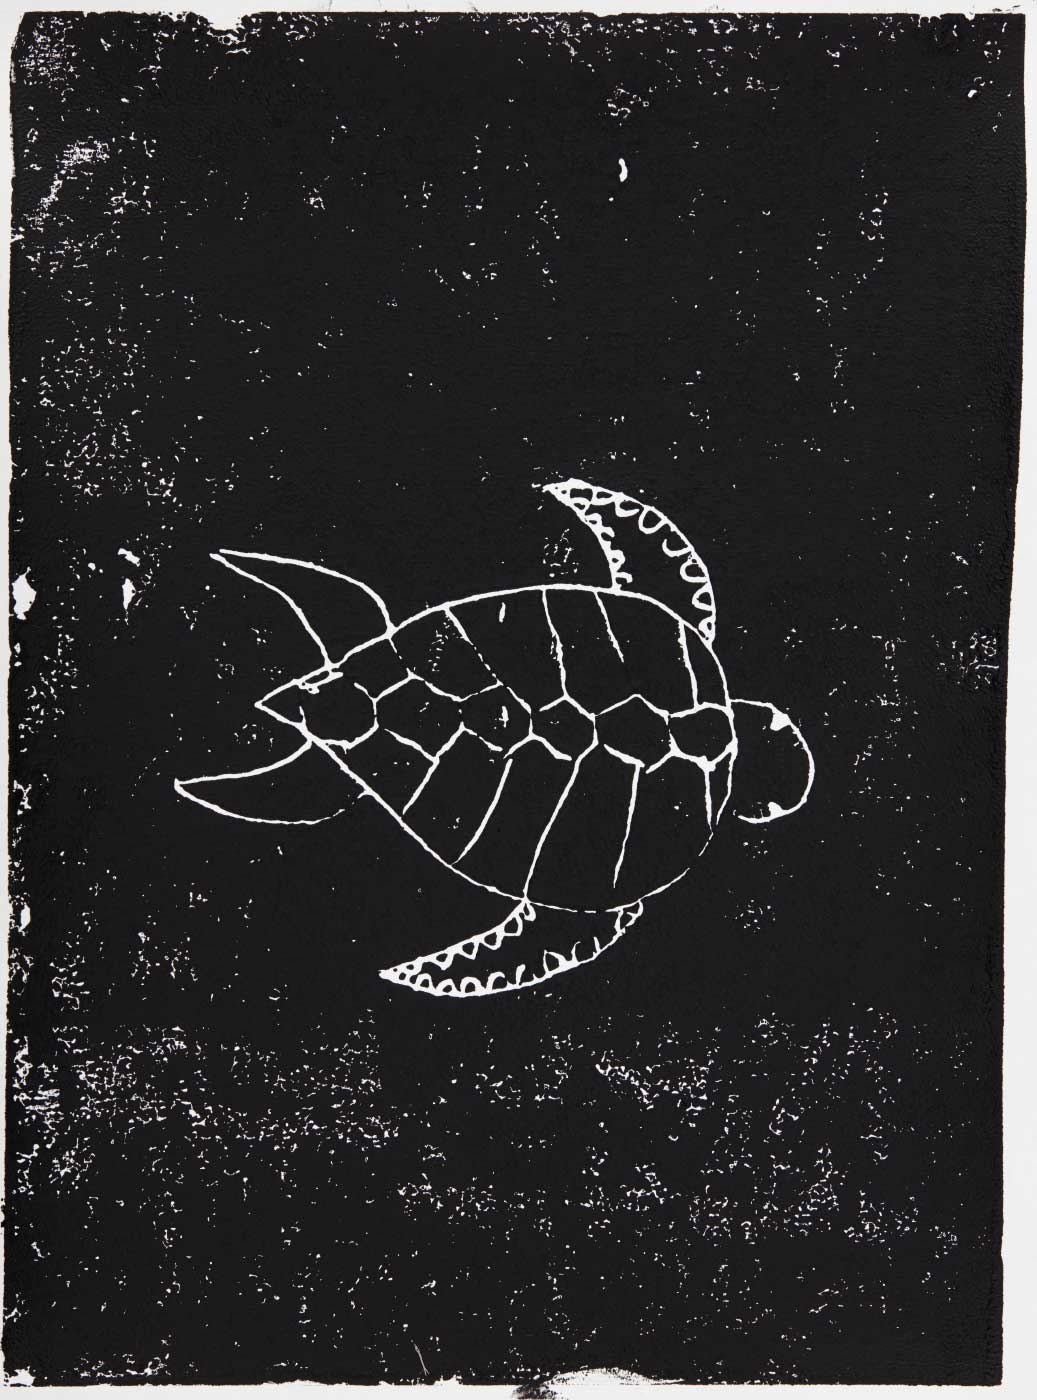 Print, black ink on white paper, depicting a turtle. Annotated in pencil 'Anishma'. - click to view larger image